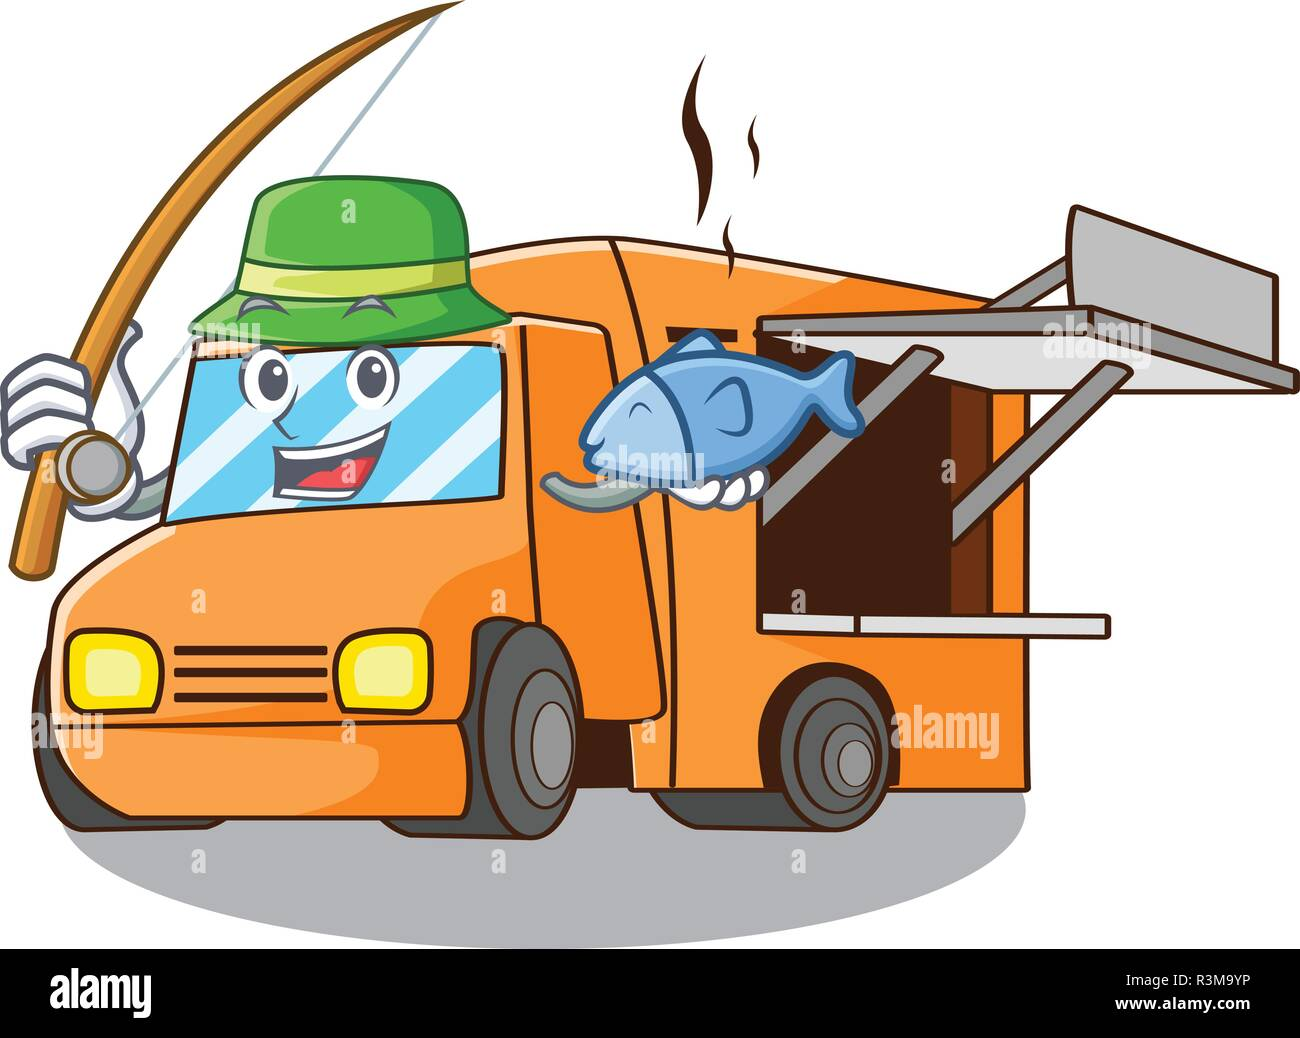 Fishing food truck festival on shape cartoon - Stock Image